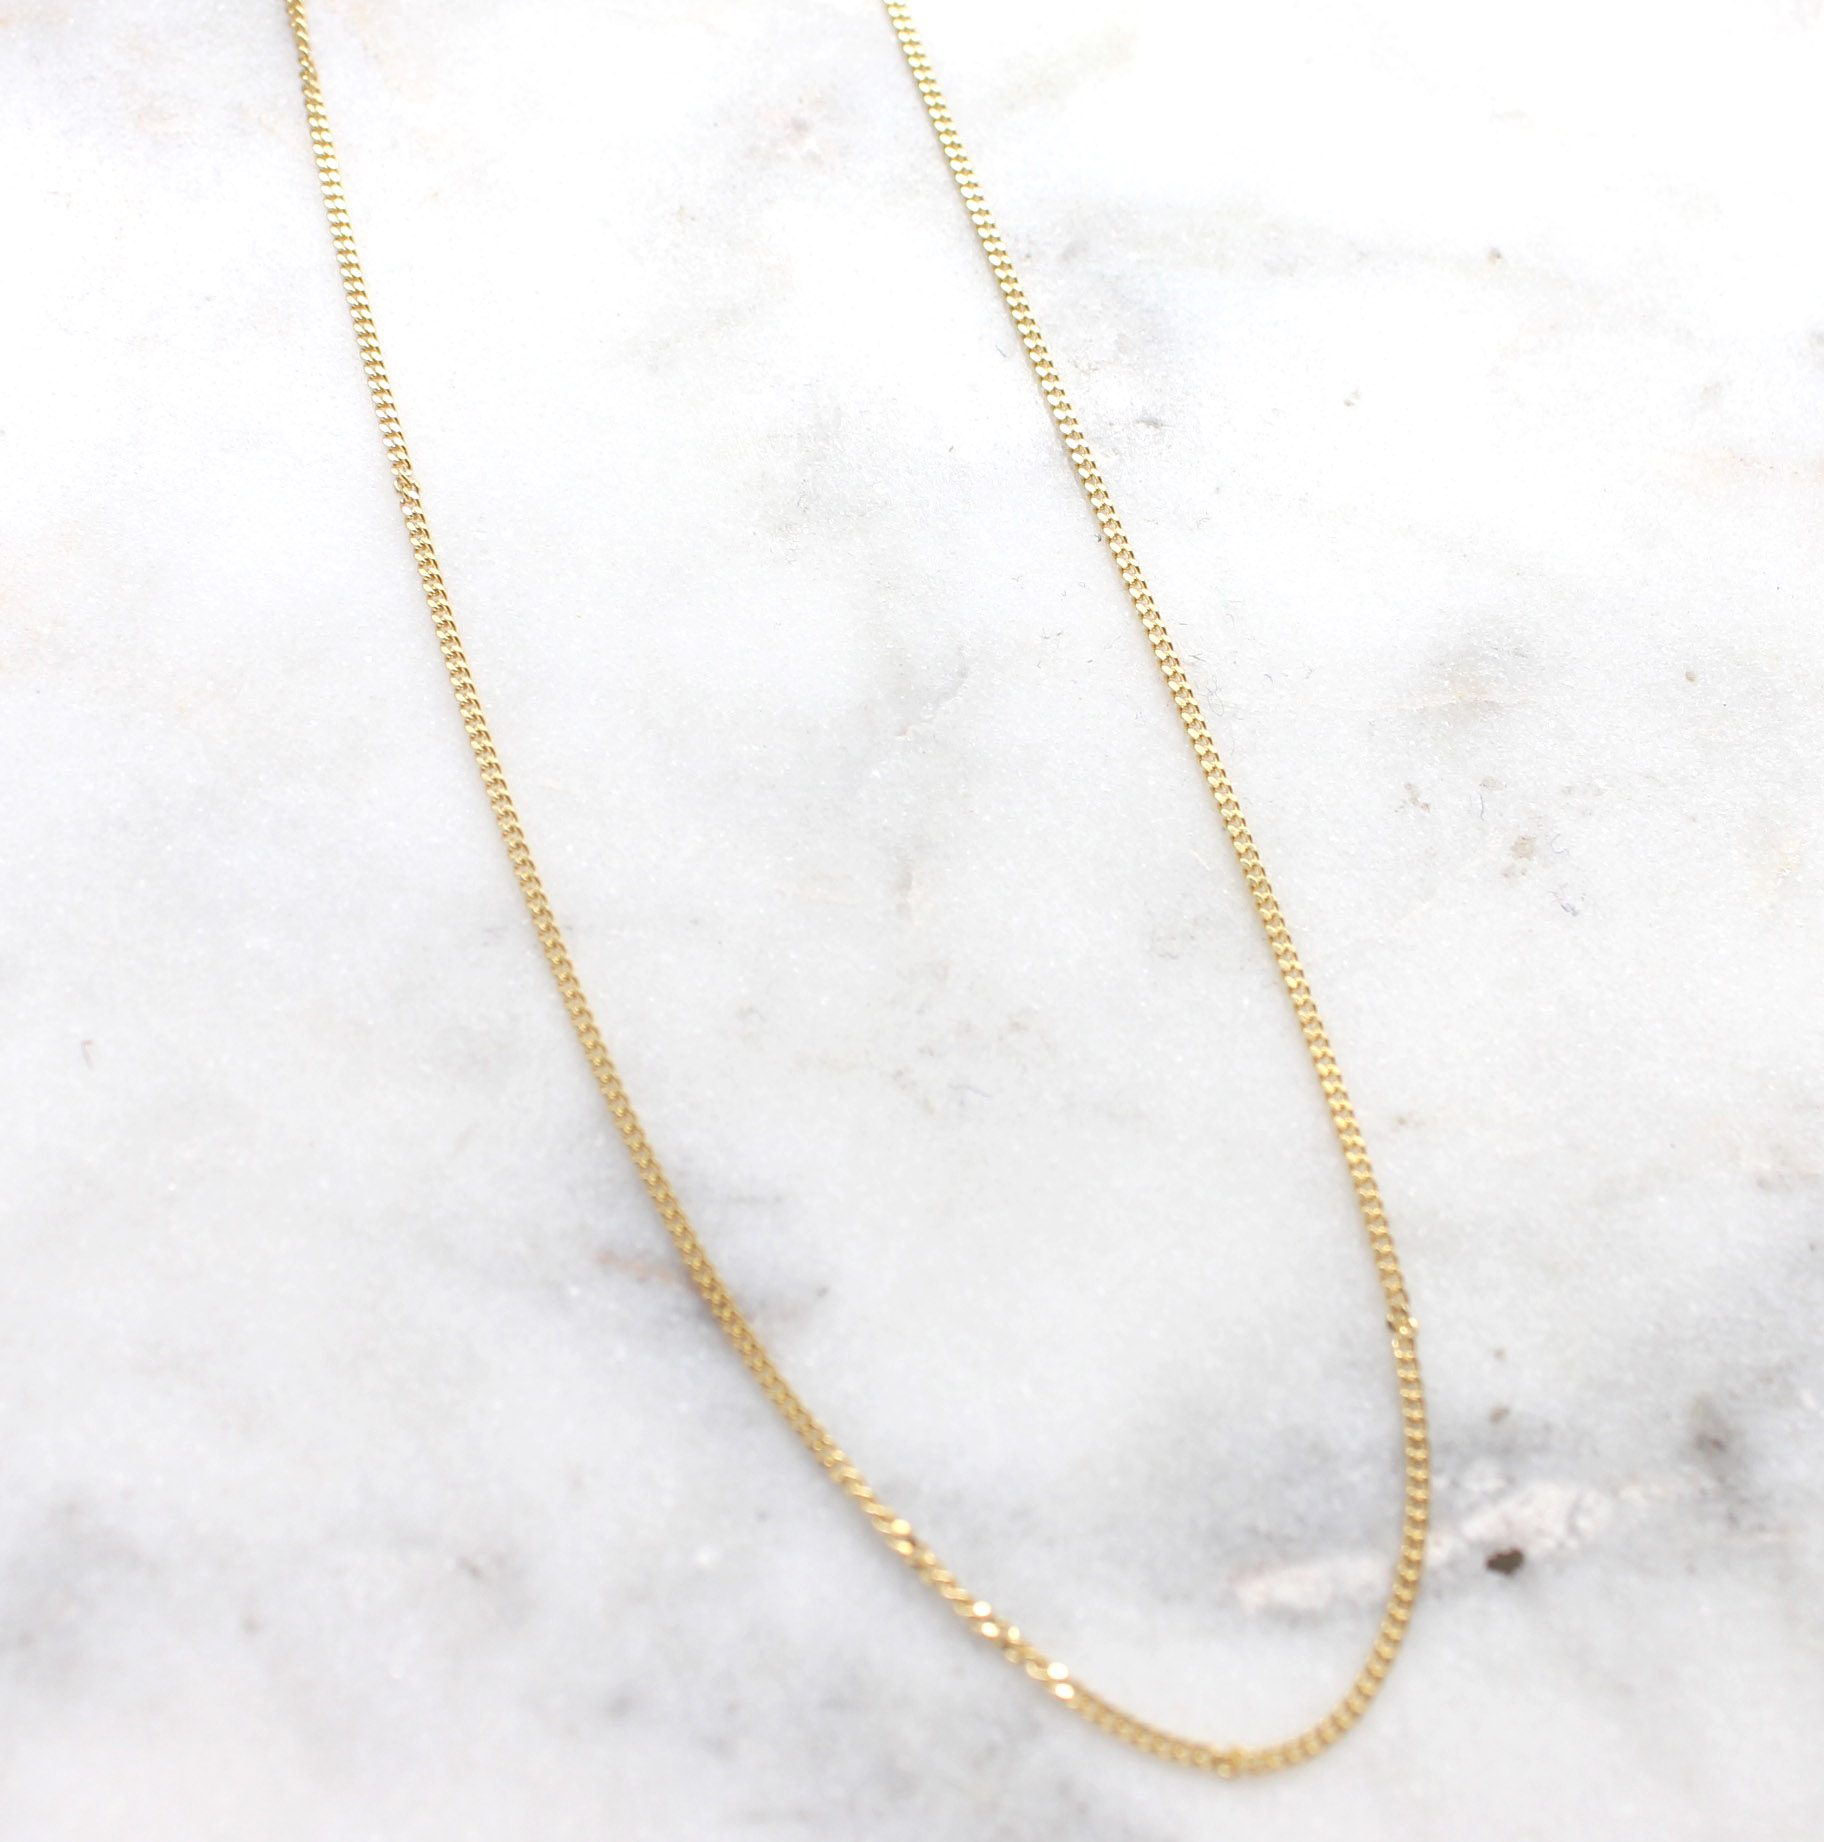 new product af61b 5a20e Gold Chain Made In Italy - Best of Everything | Online Shopping